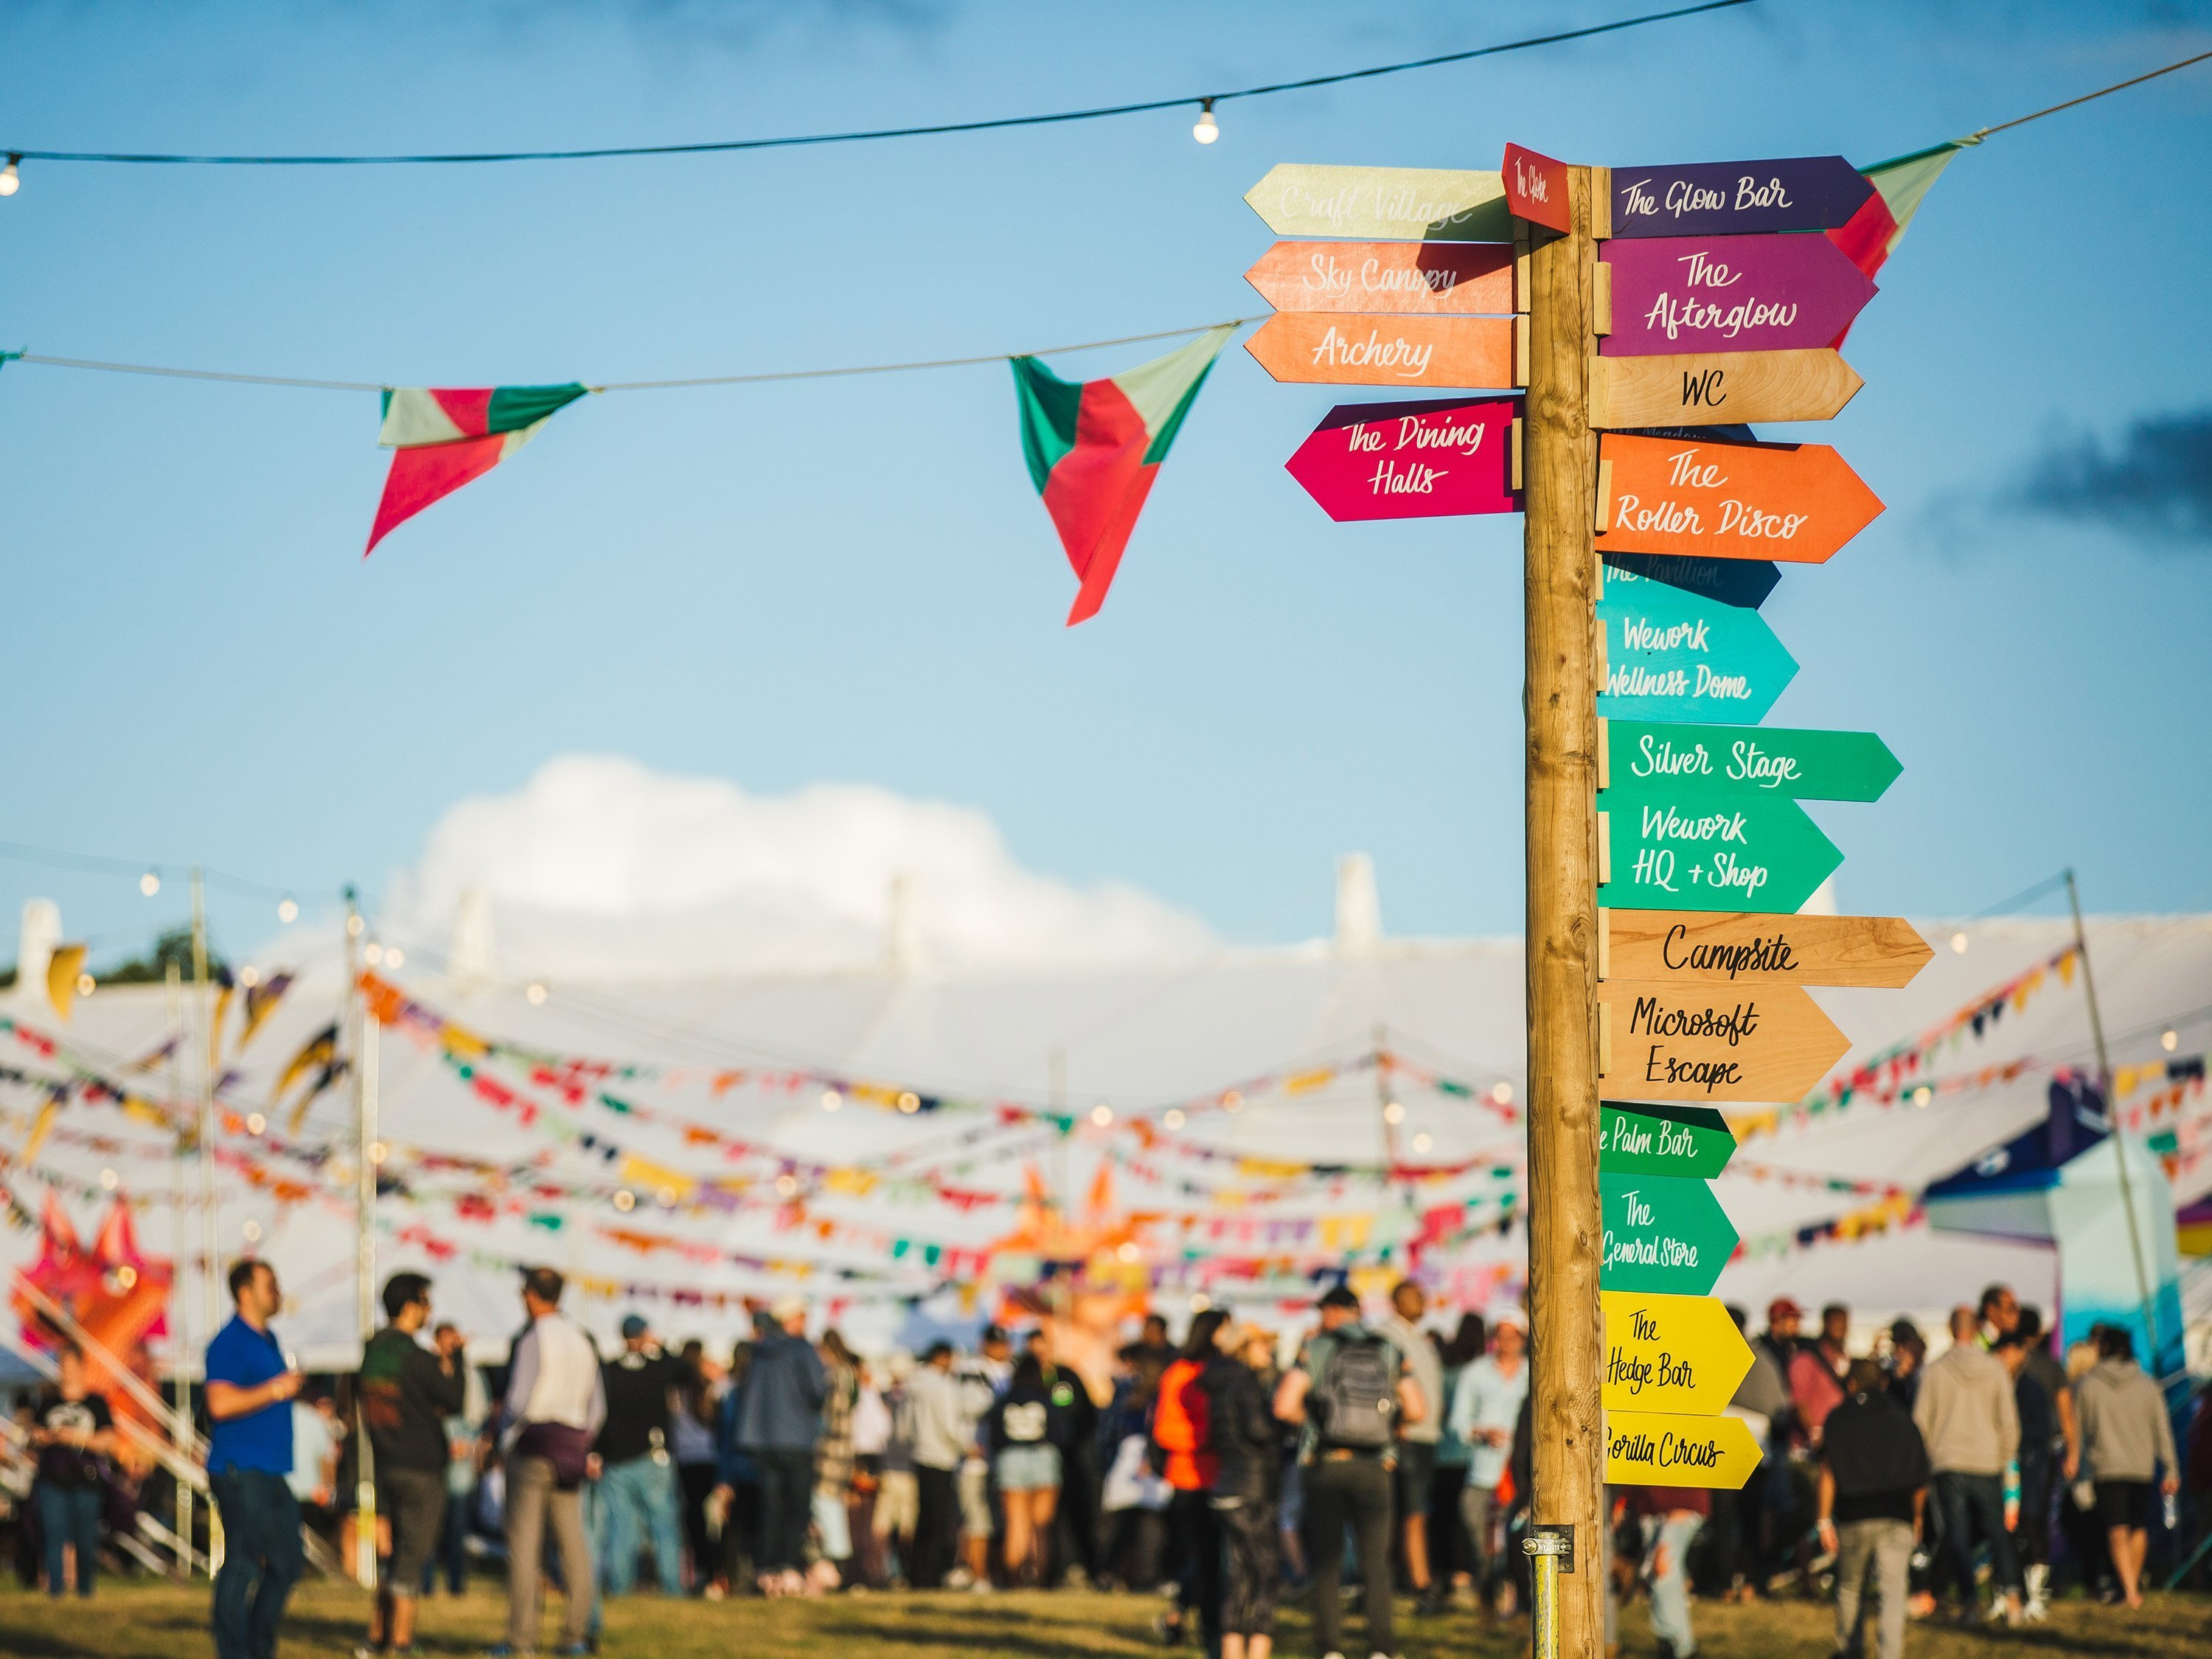 Some 8,000 WeWork employees from around the world descend on a bucolic pasture in England for the company's seventh annual summer camp.